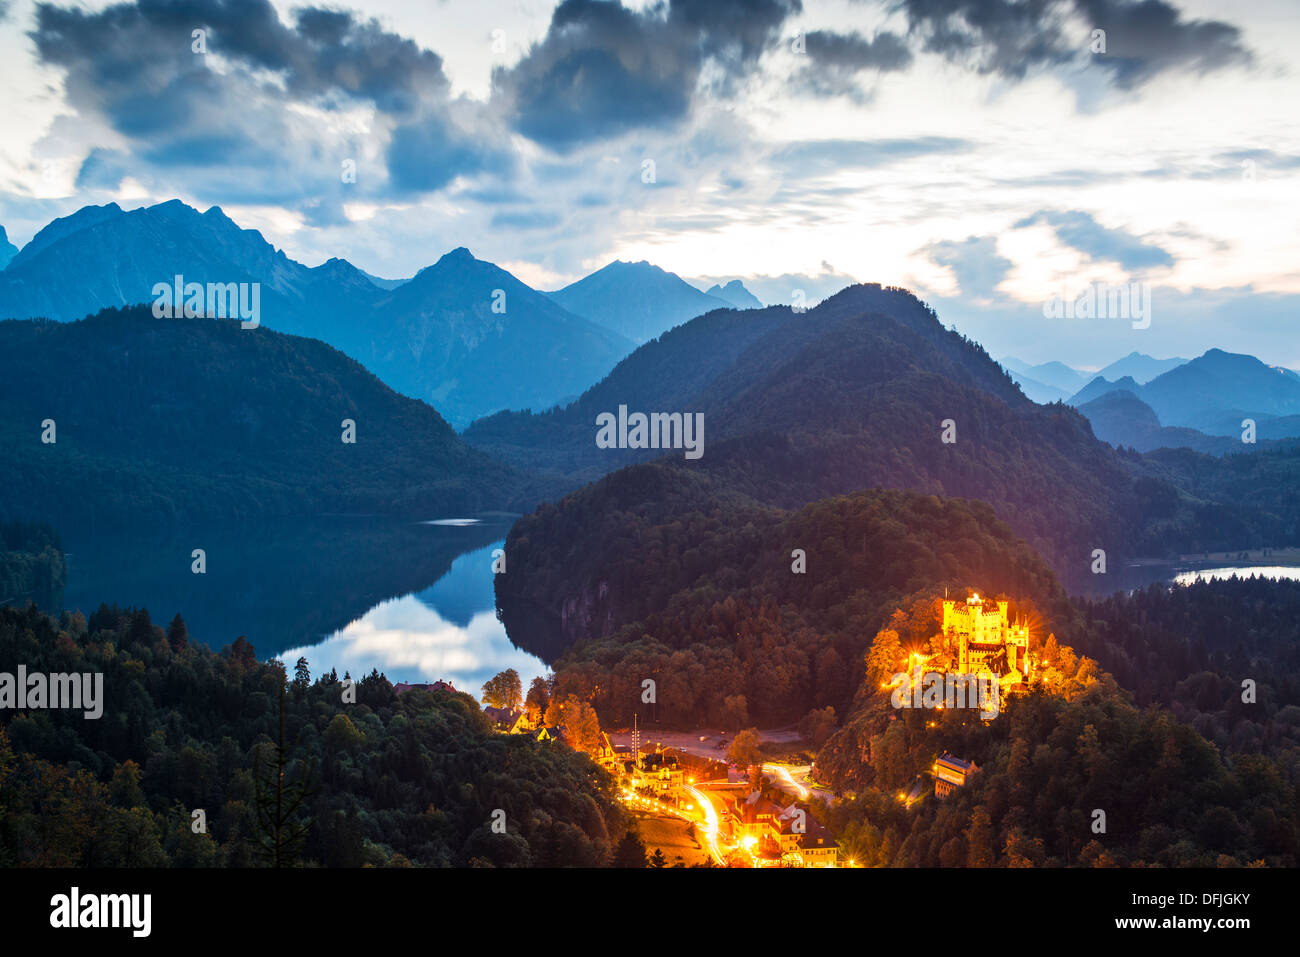 Hohenschwangau Castle in the Bavarian Alps of Germany. - Stock Image